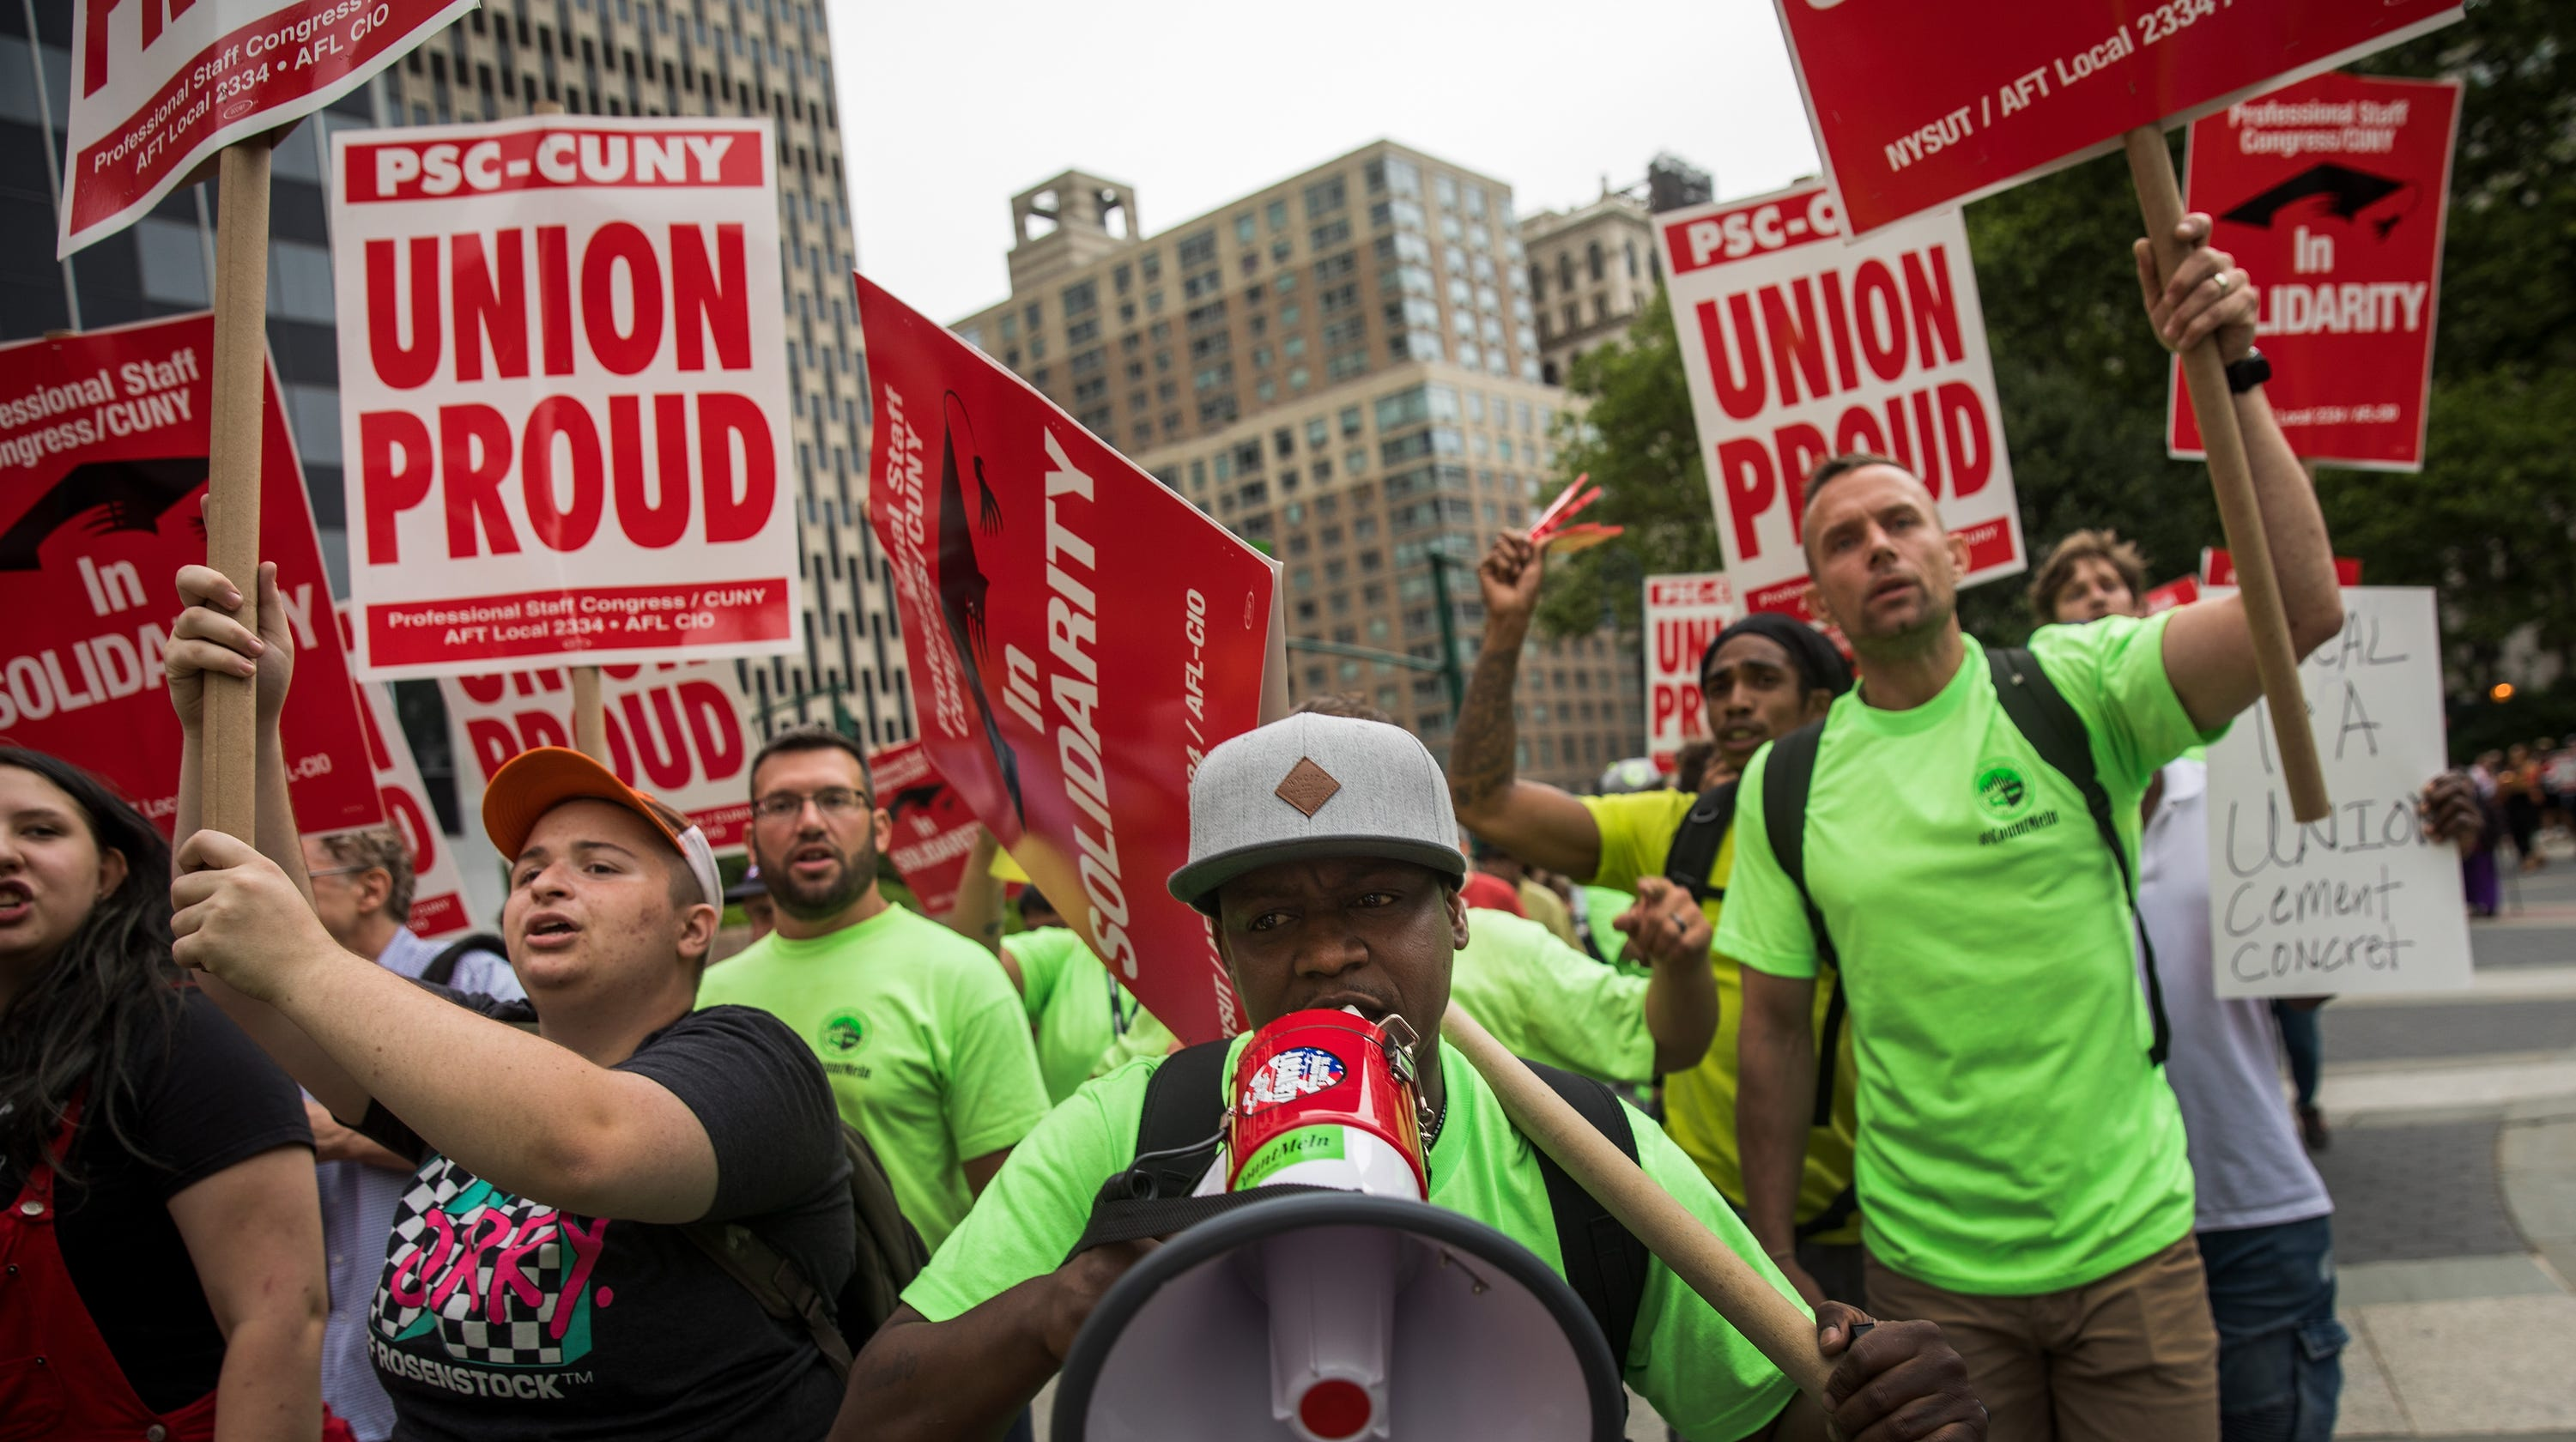 Unions remain strong in NY despite Supreme Court ruling